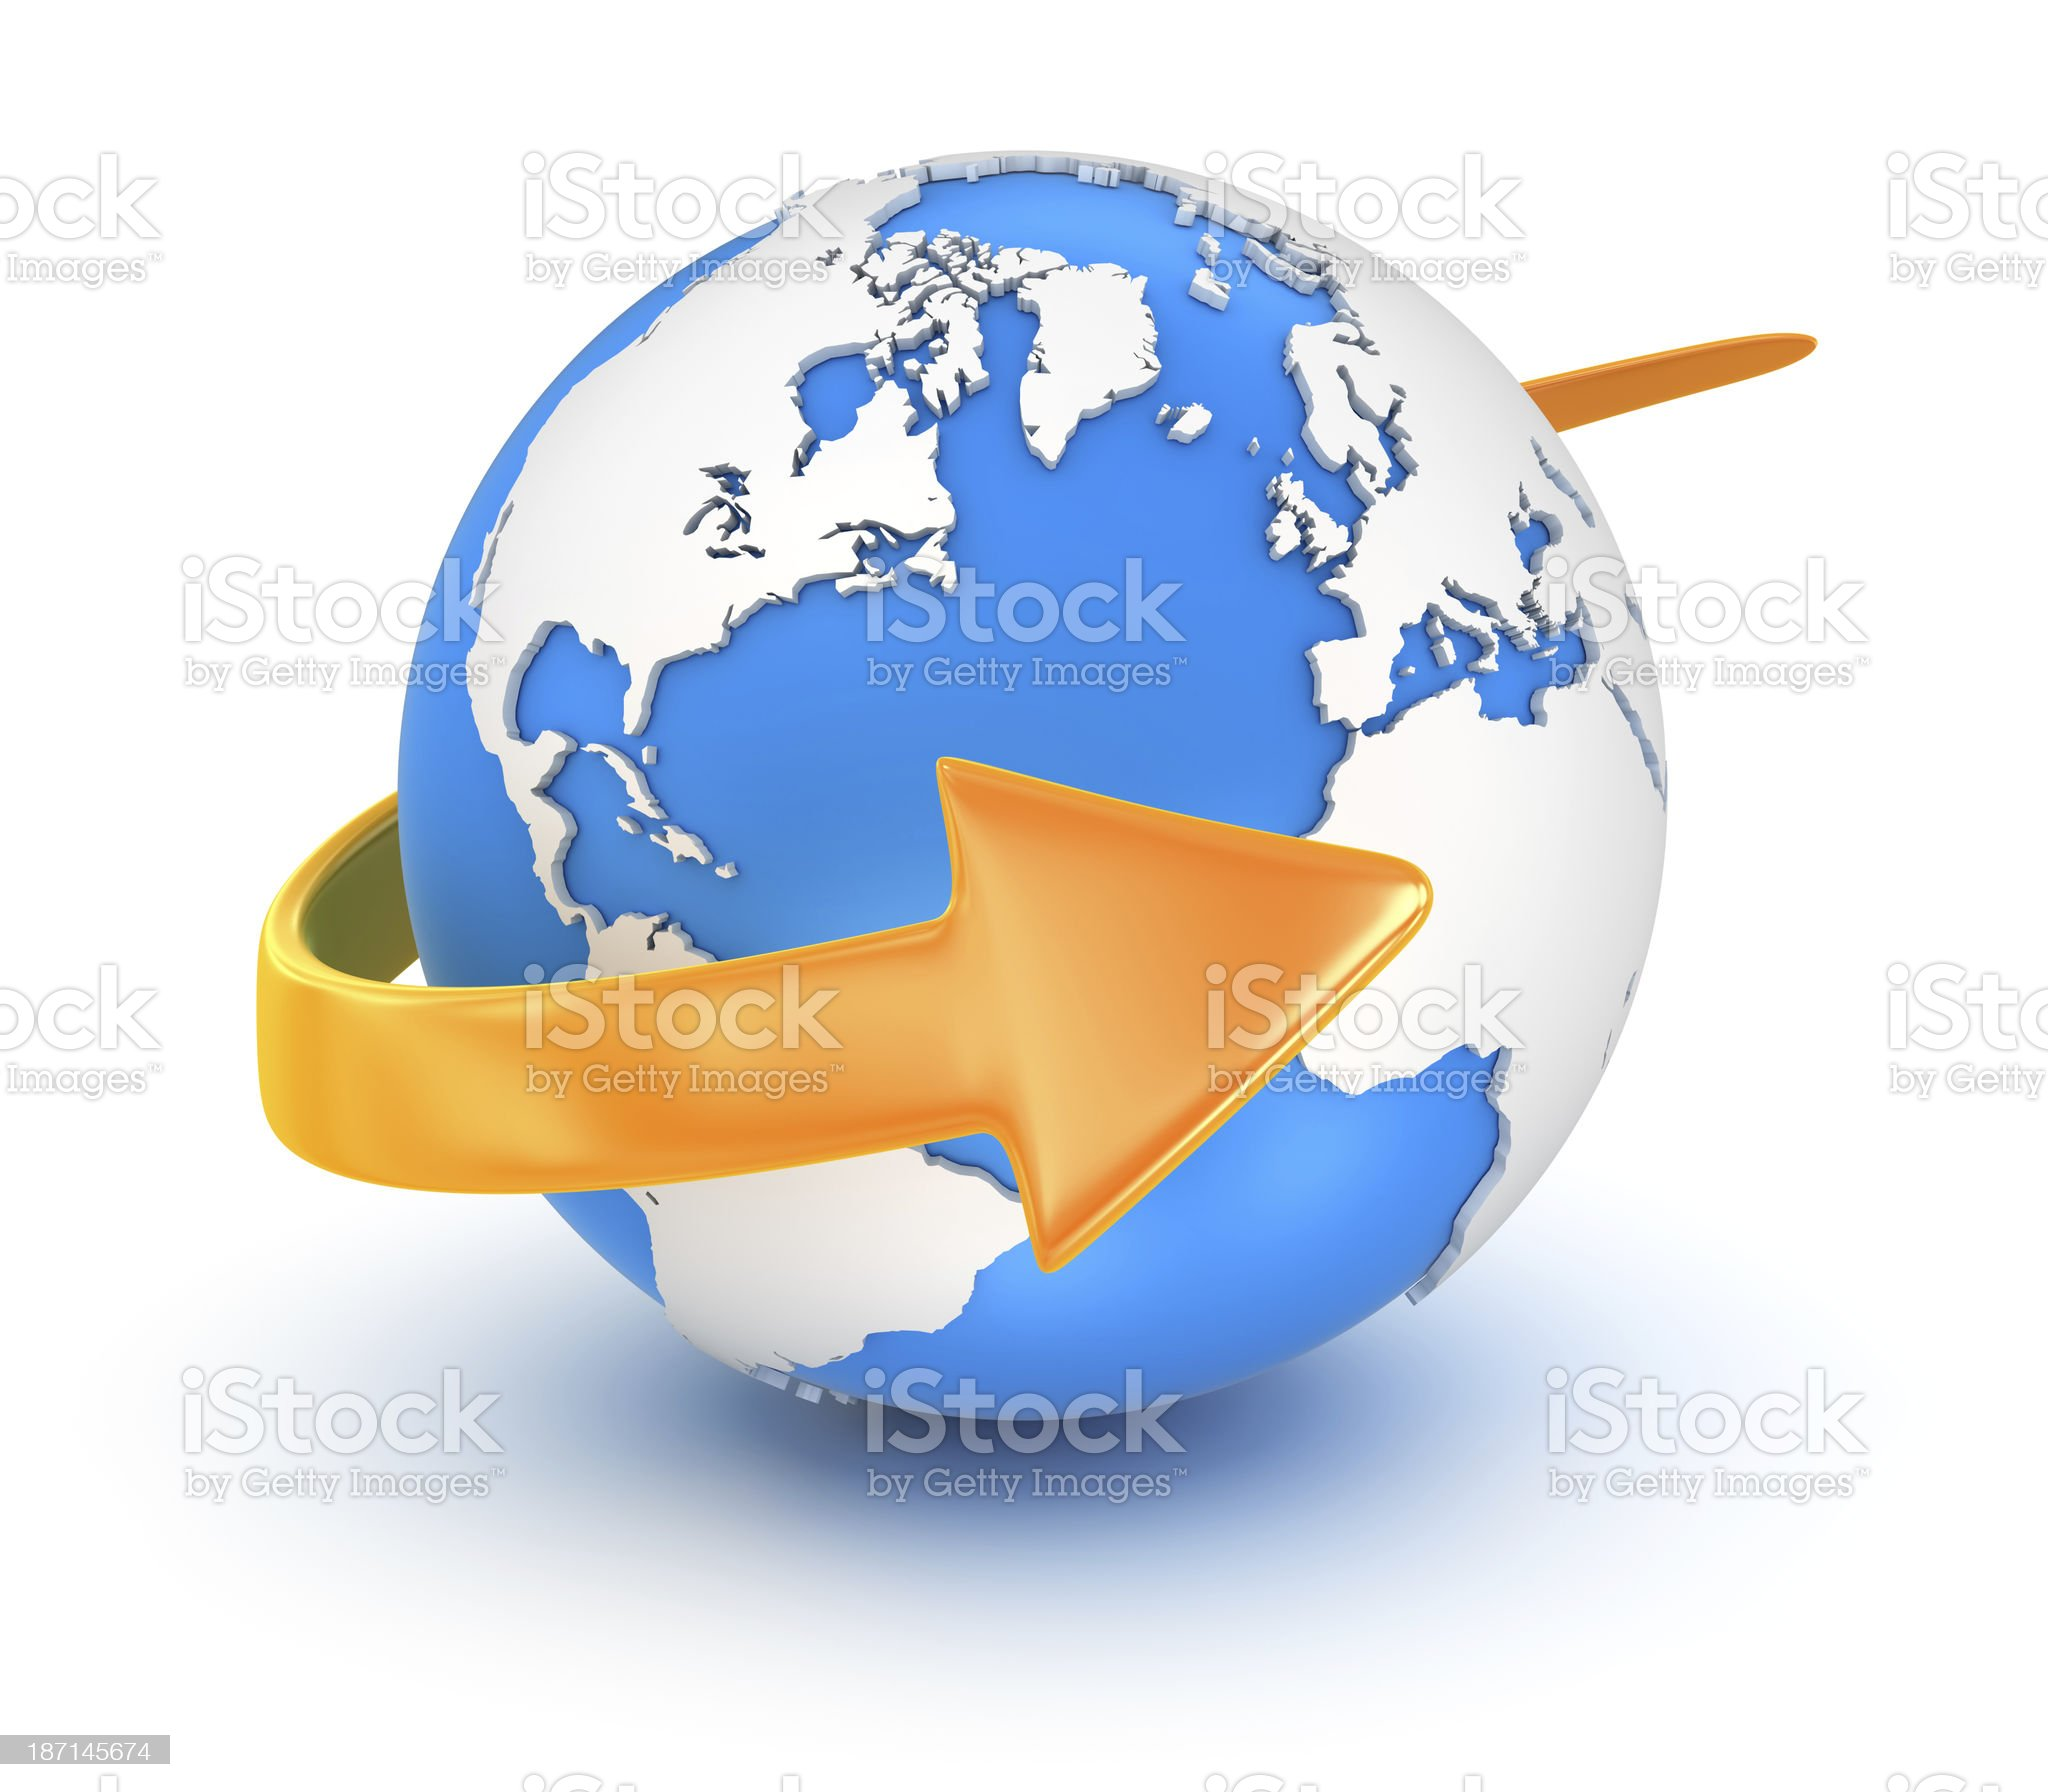 Global Communication royalty-free stock photo